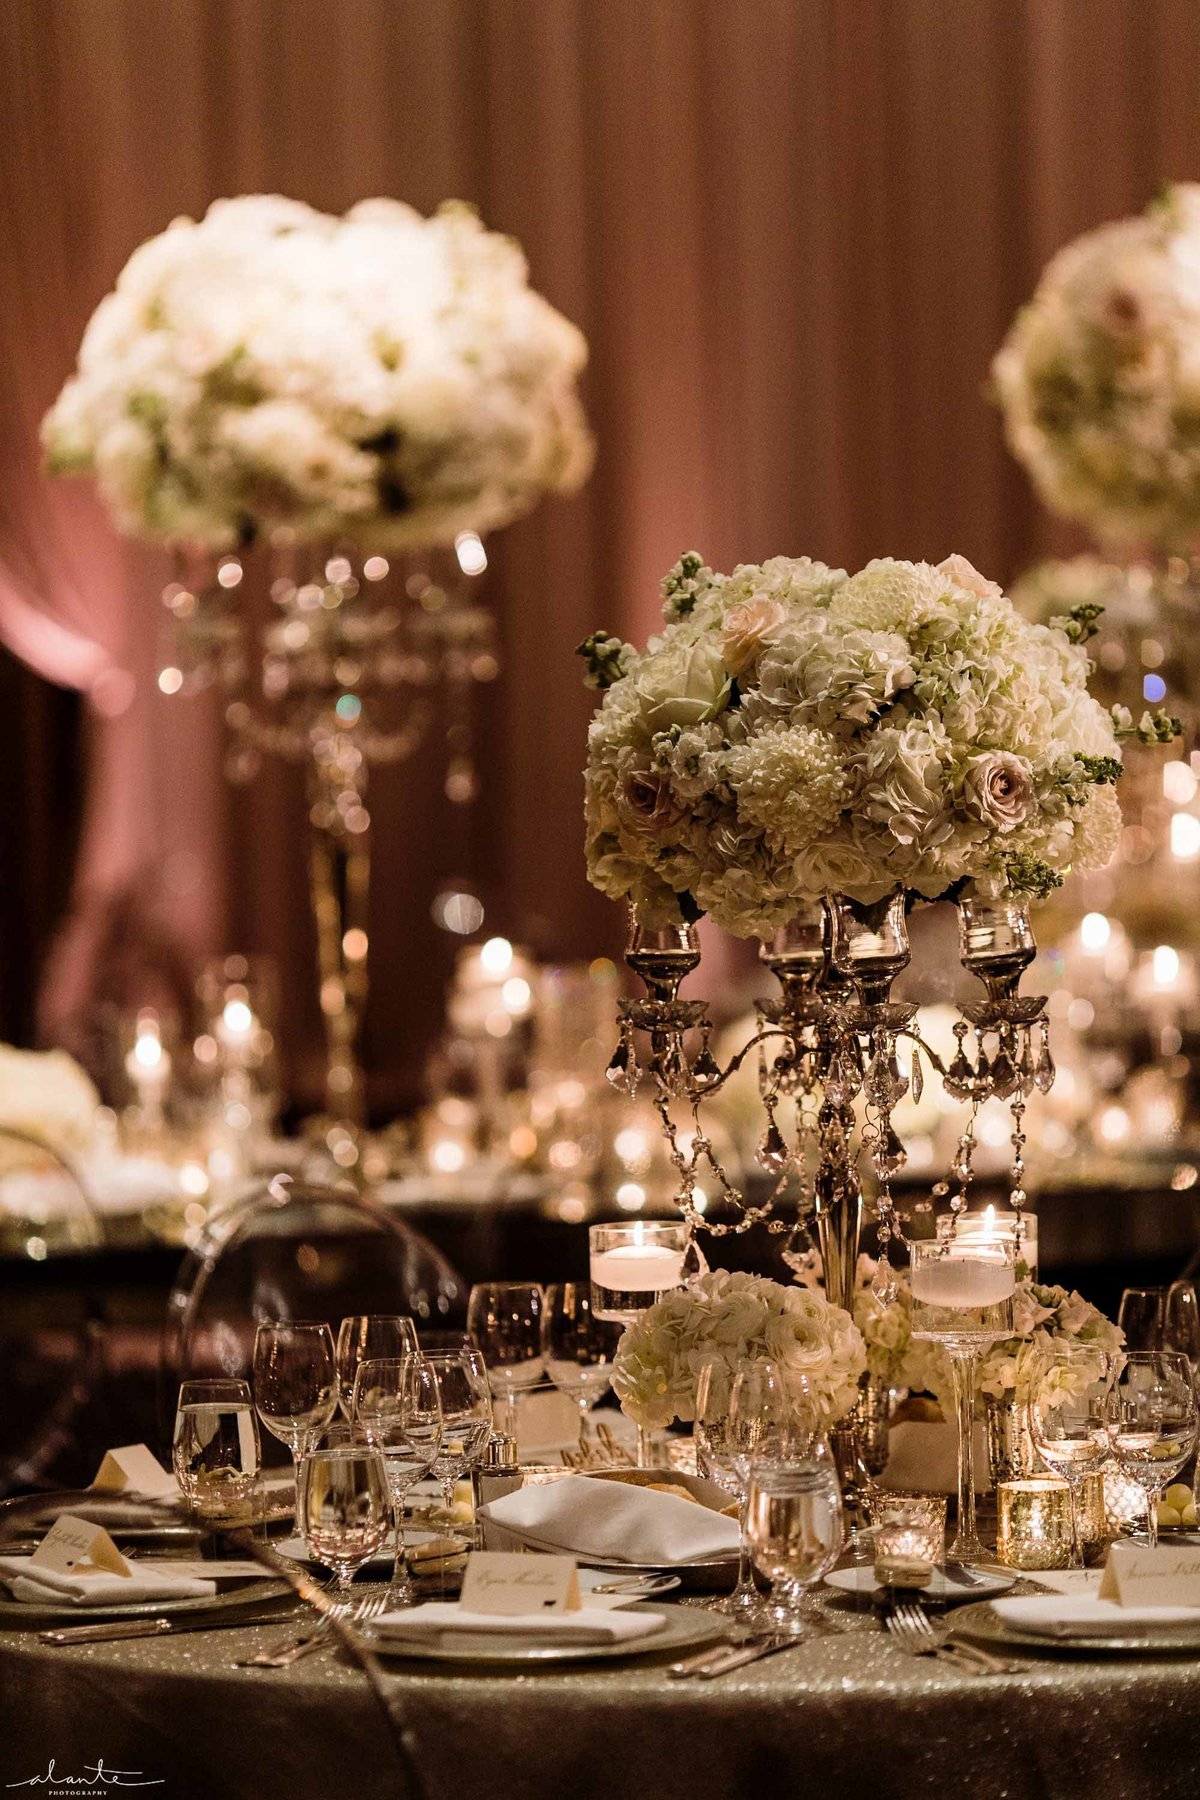 White and silver floral flowers on silver crystal candelabras